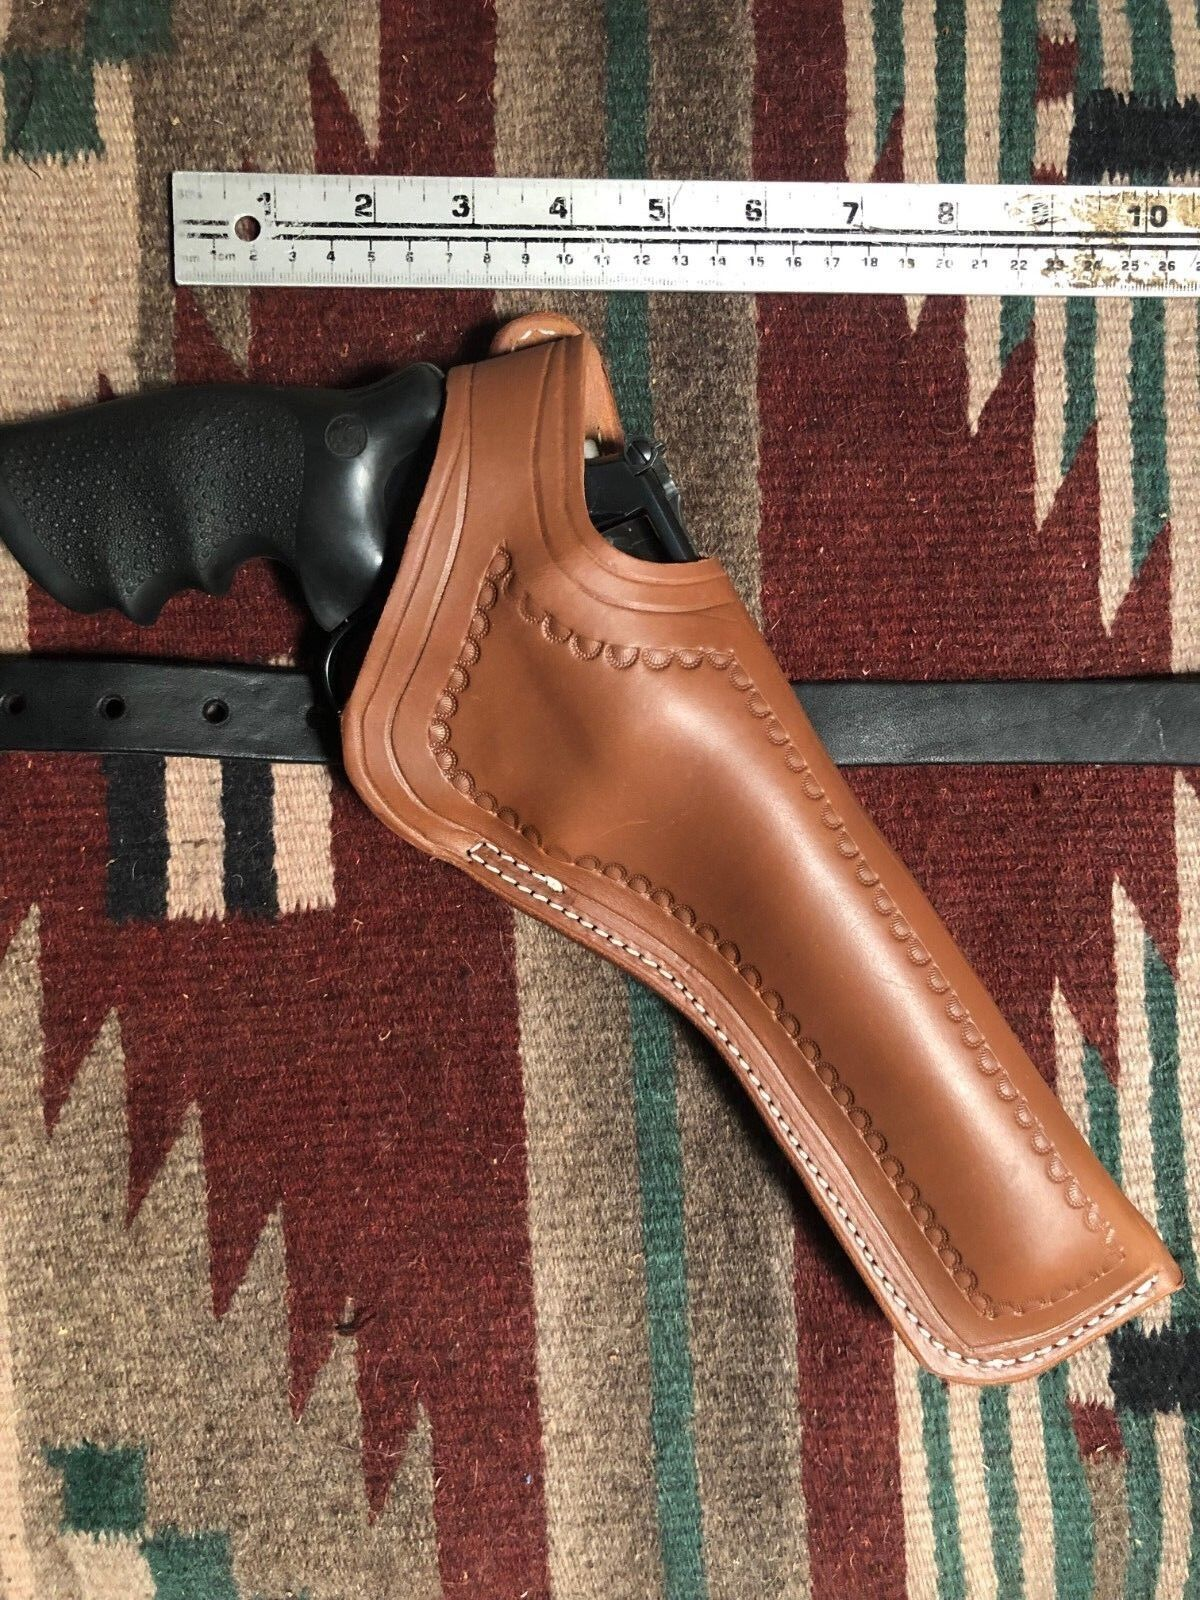 Fit S&W Model 27 29 625 627 629 6  Two Position Holster Cross Draw Tooled Border